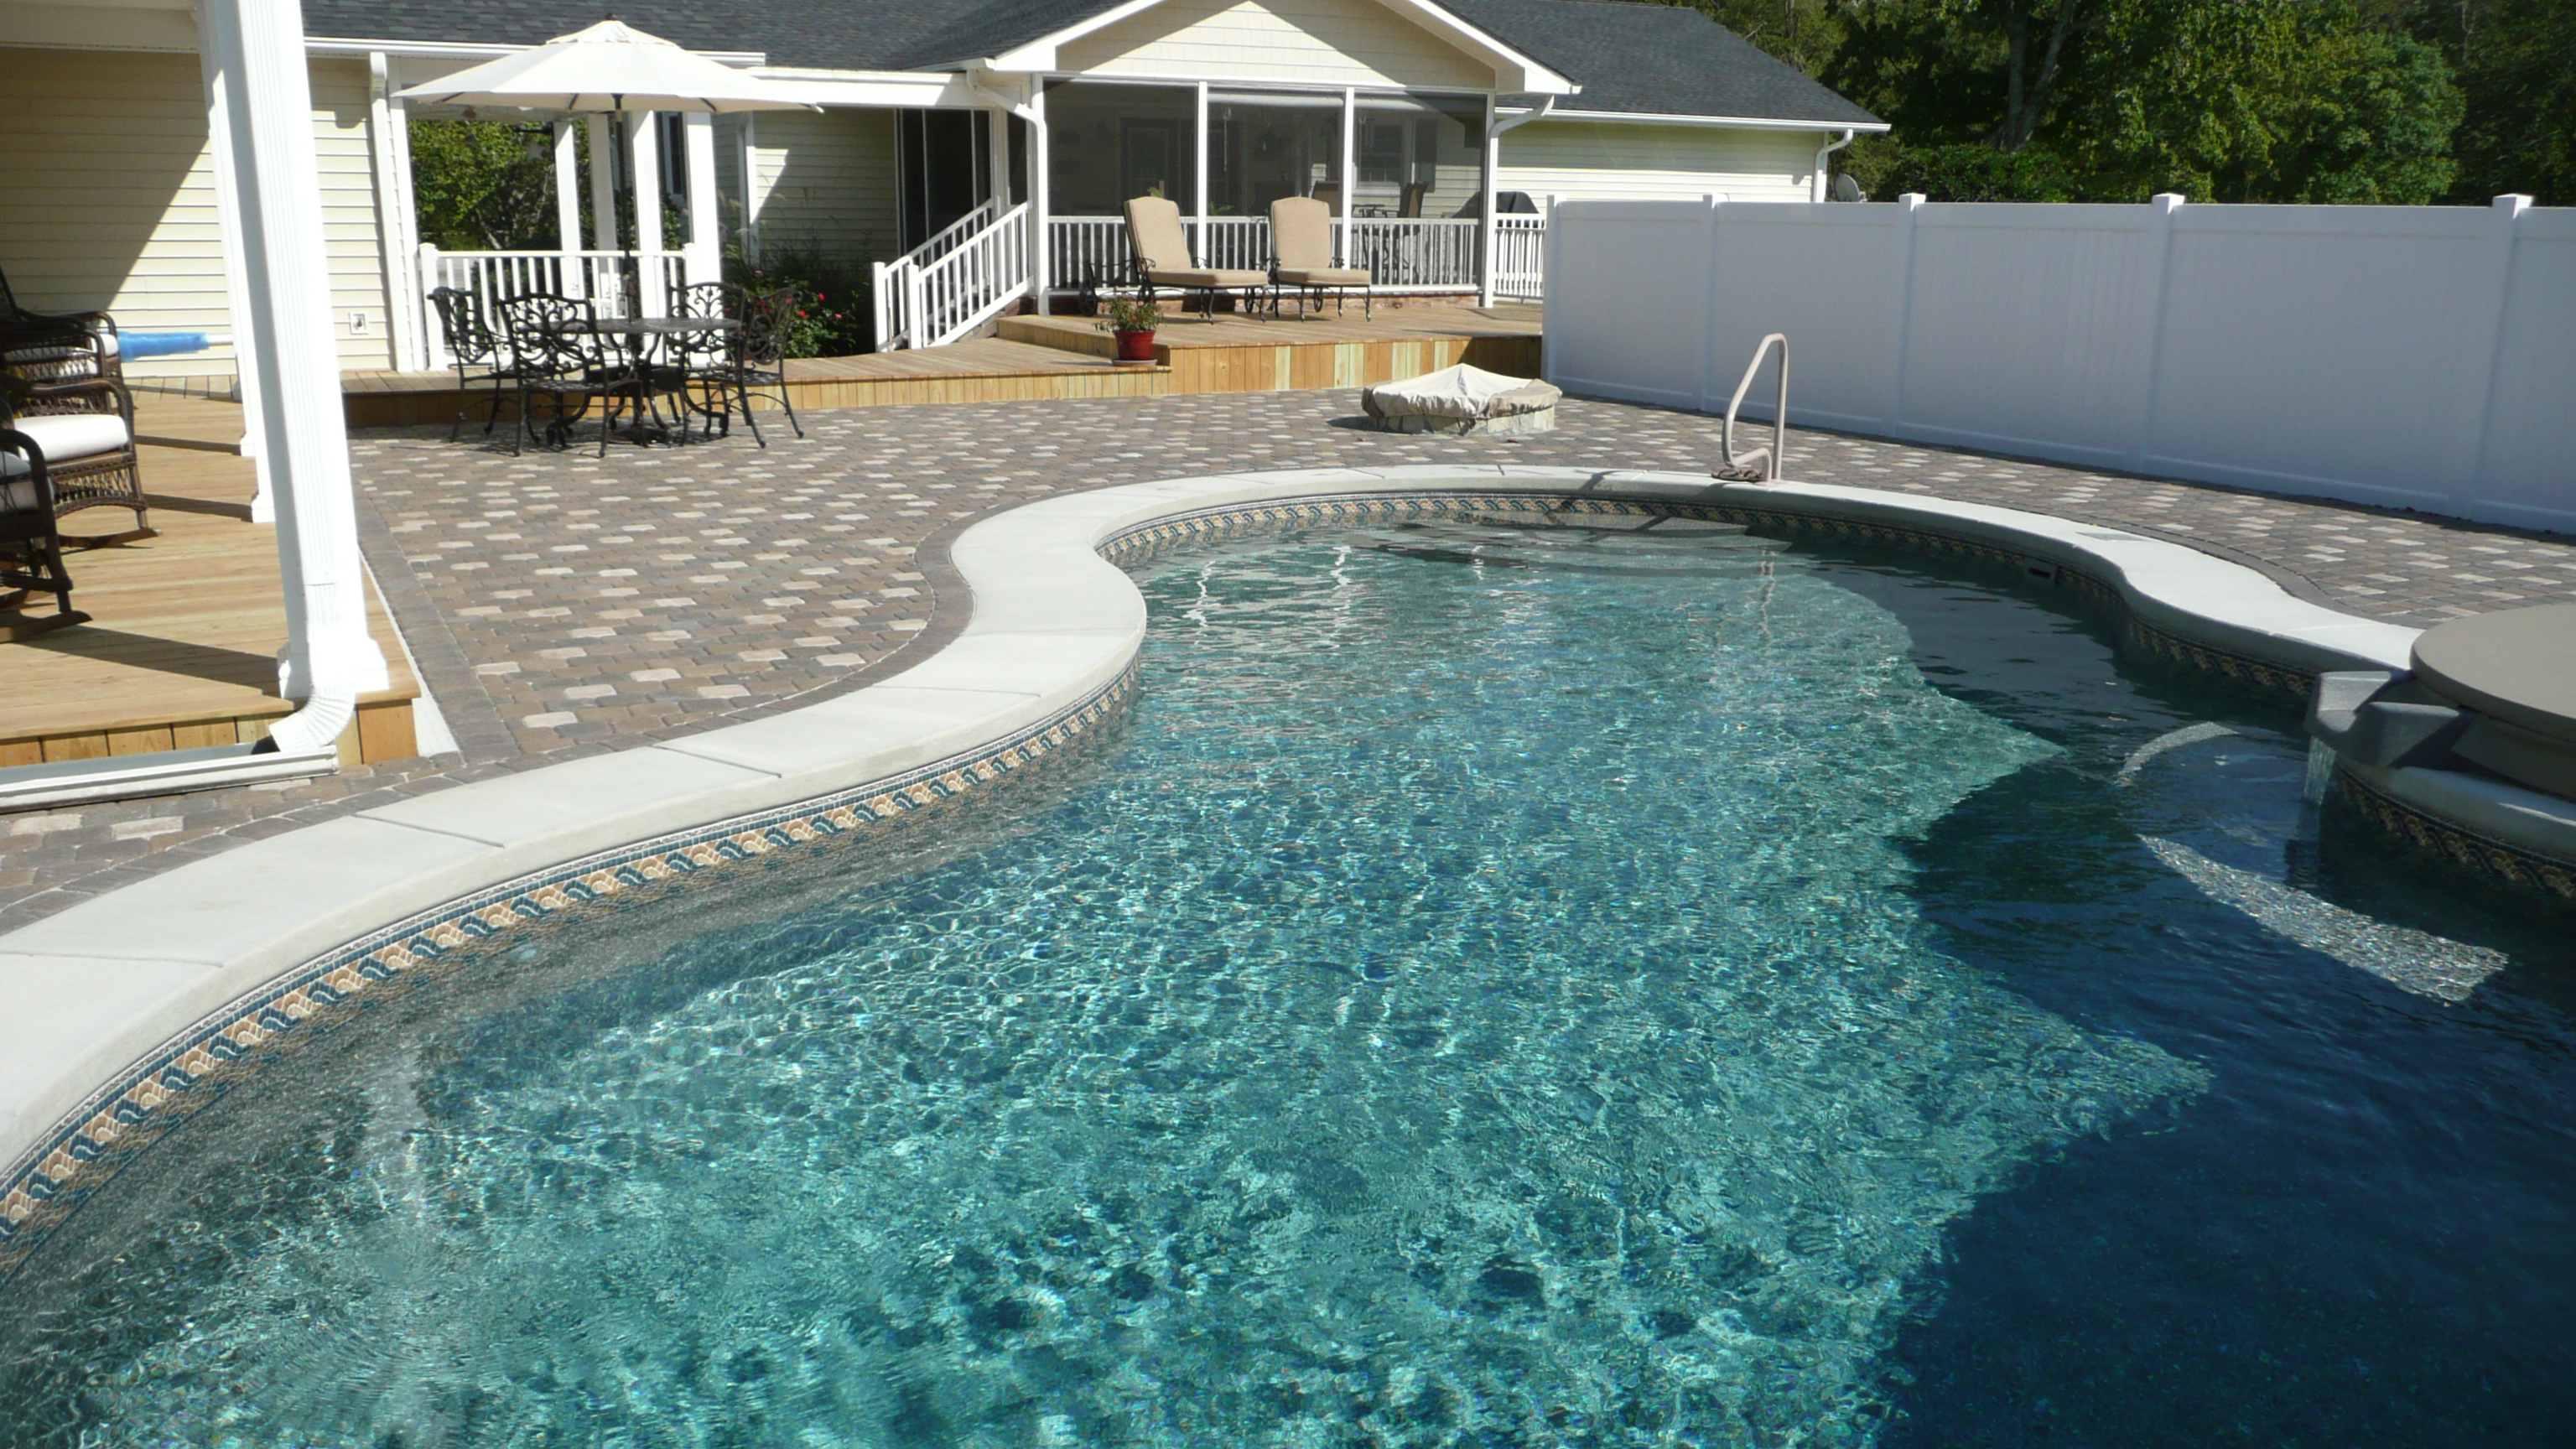 Vinyl Liner Pool with Paver Deck